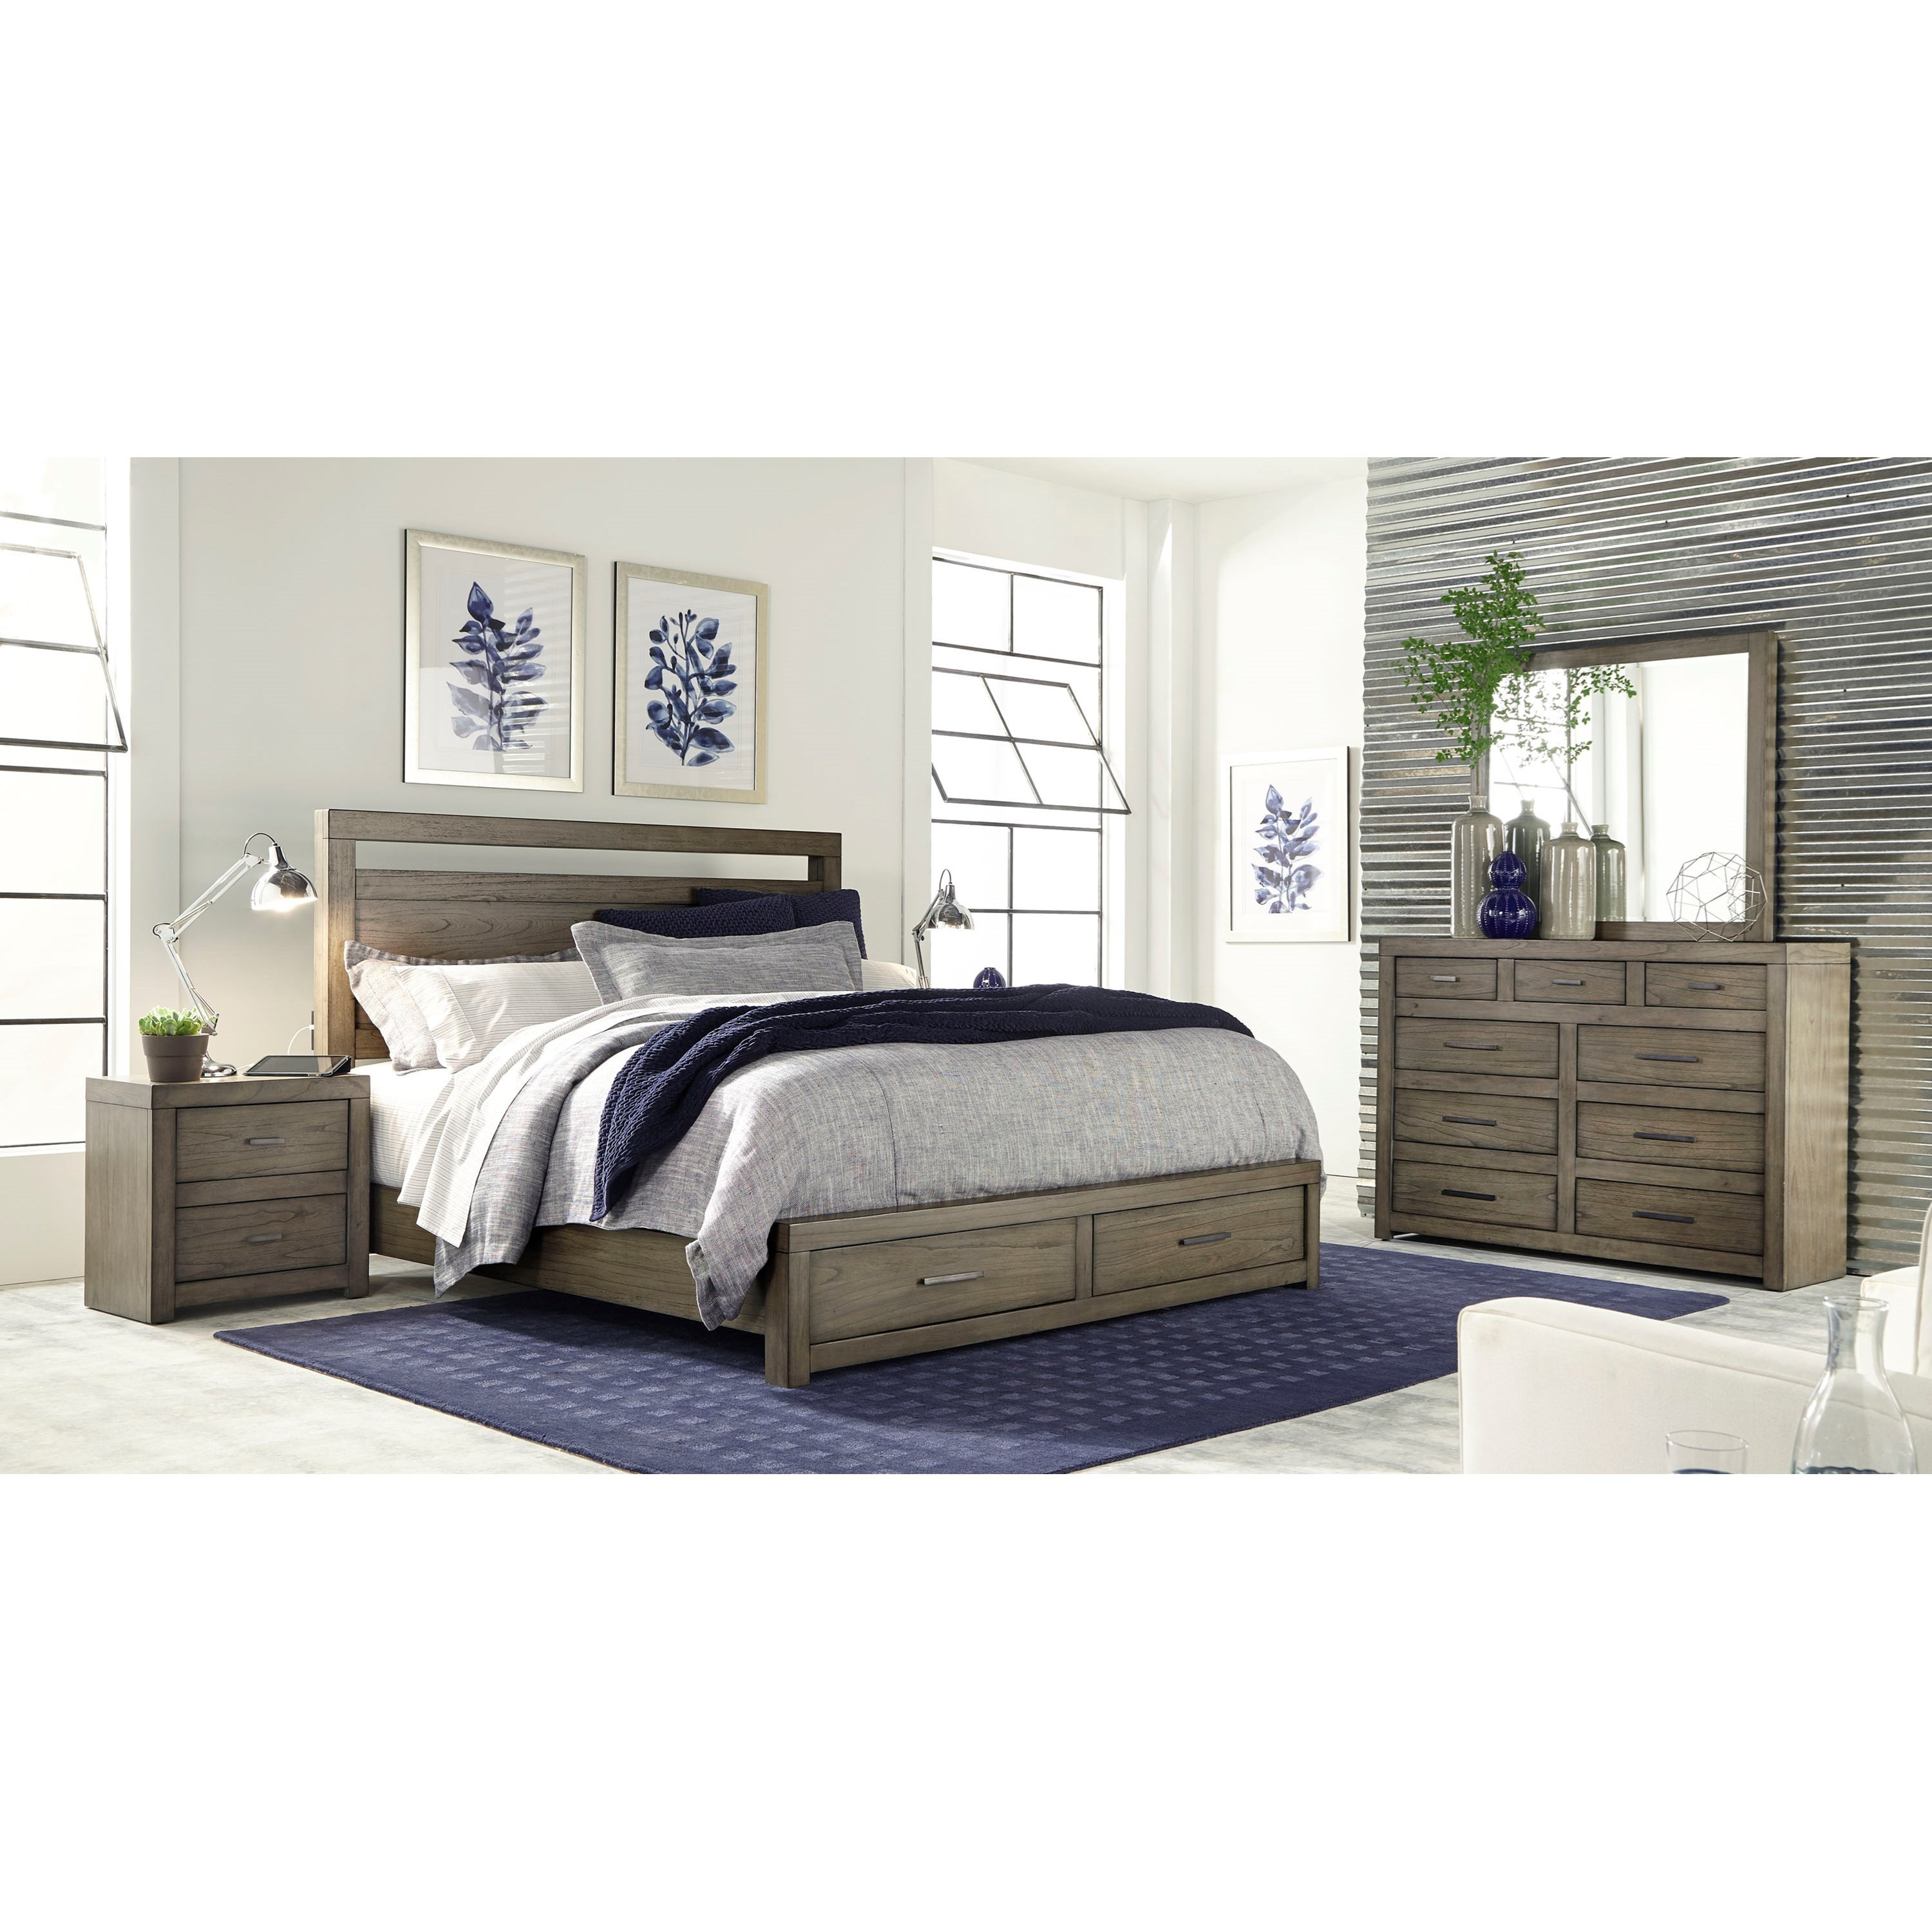 Modern Loft Queen Bedroom Group by Aspenhome at Gill Brothers Furniture